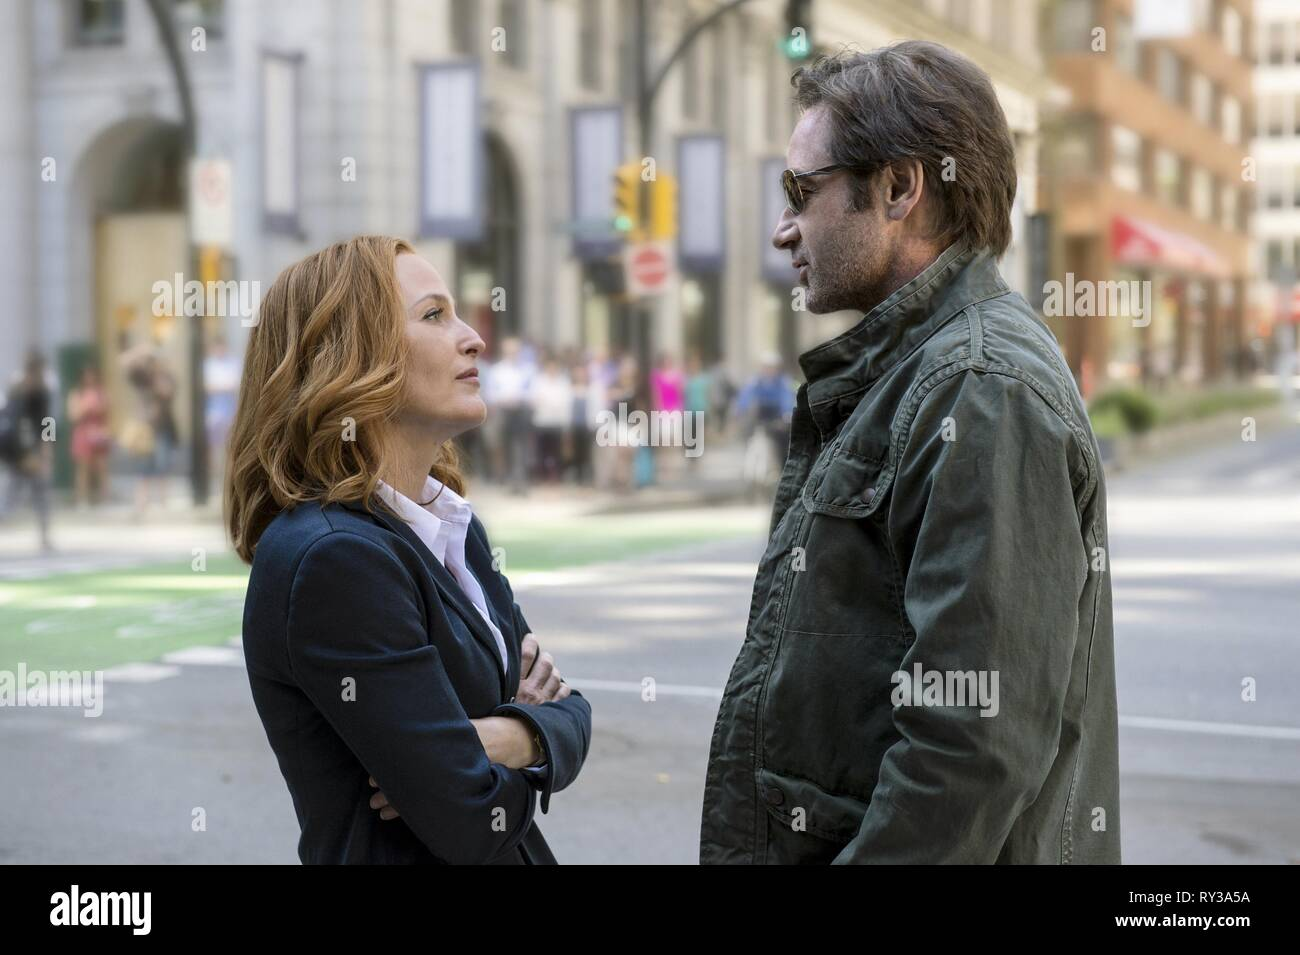 ANDERSON,DUCHOVNY, THE X-FILES, 2016 - Stock Image